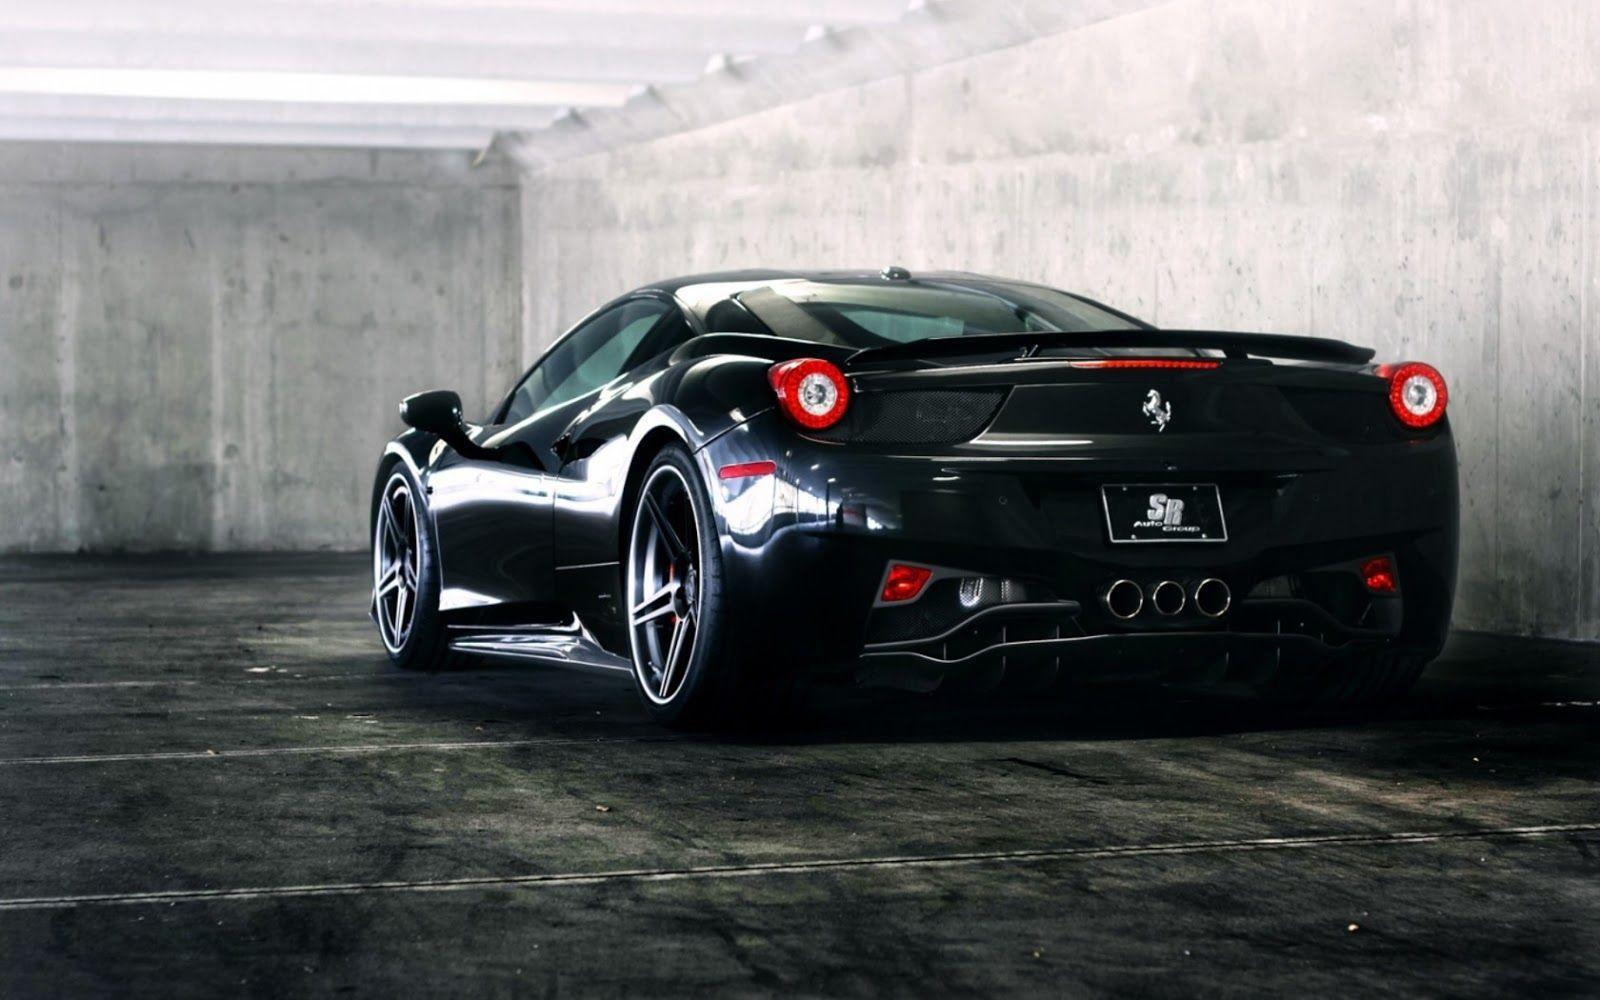 ferrari 458 italia wallpapers hd wallpaper cave. Black Bedroom Furniture Sets. Home Design Ideas